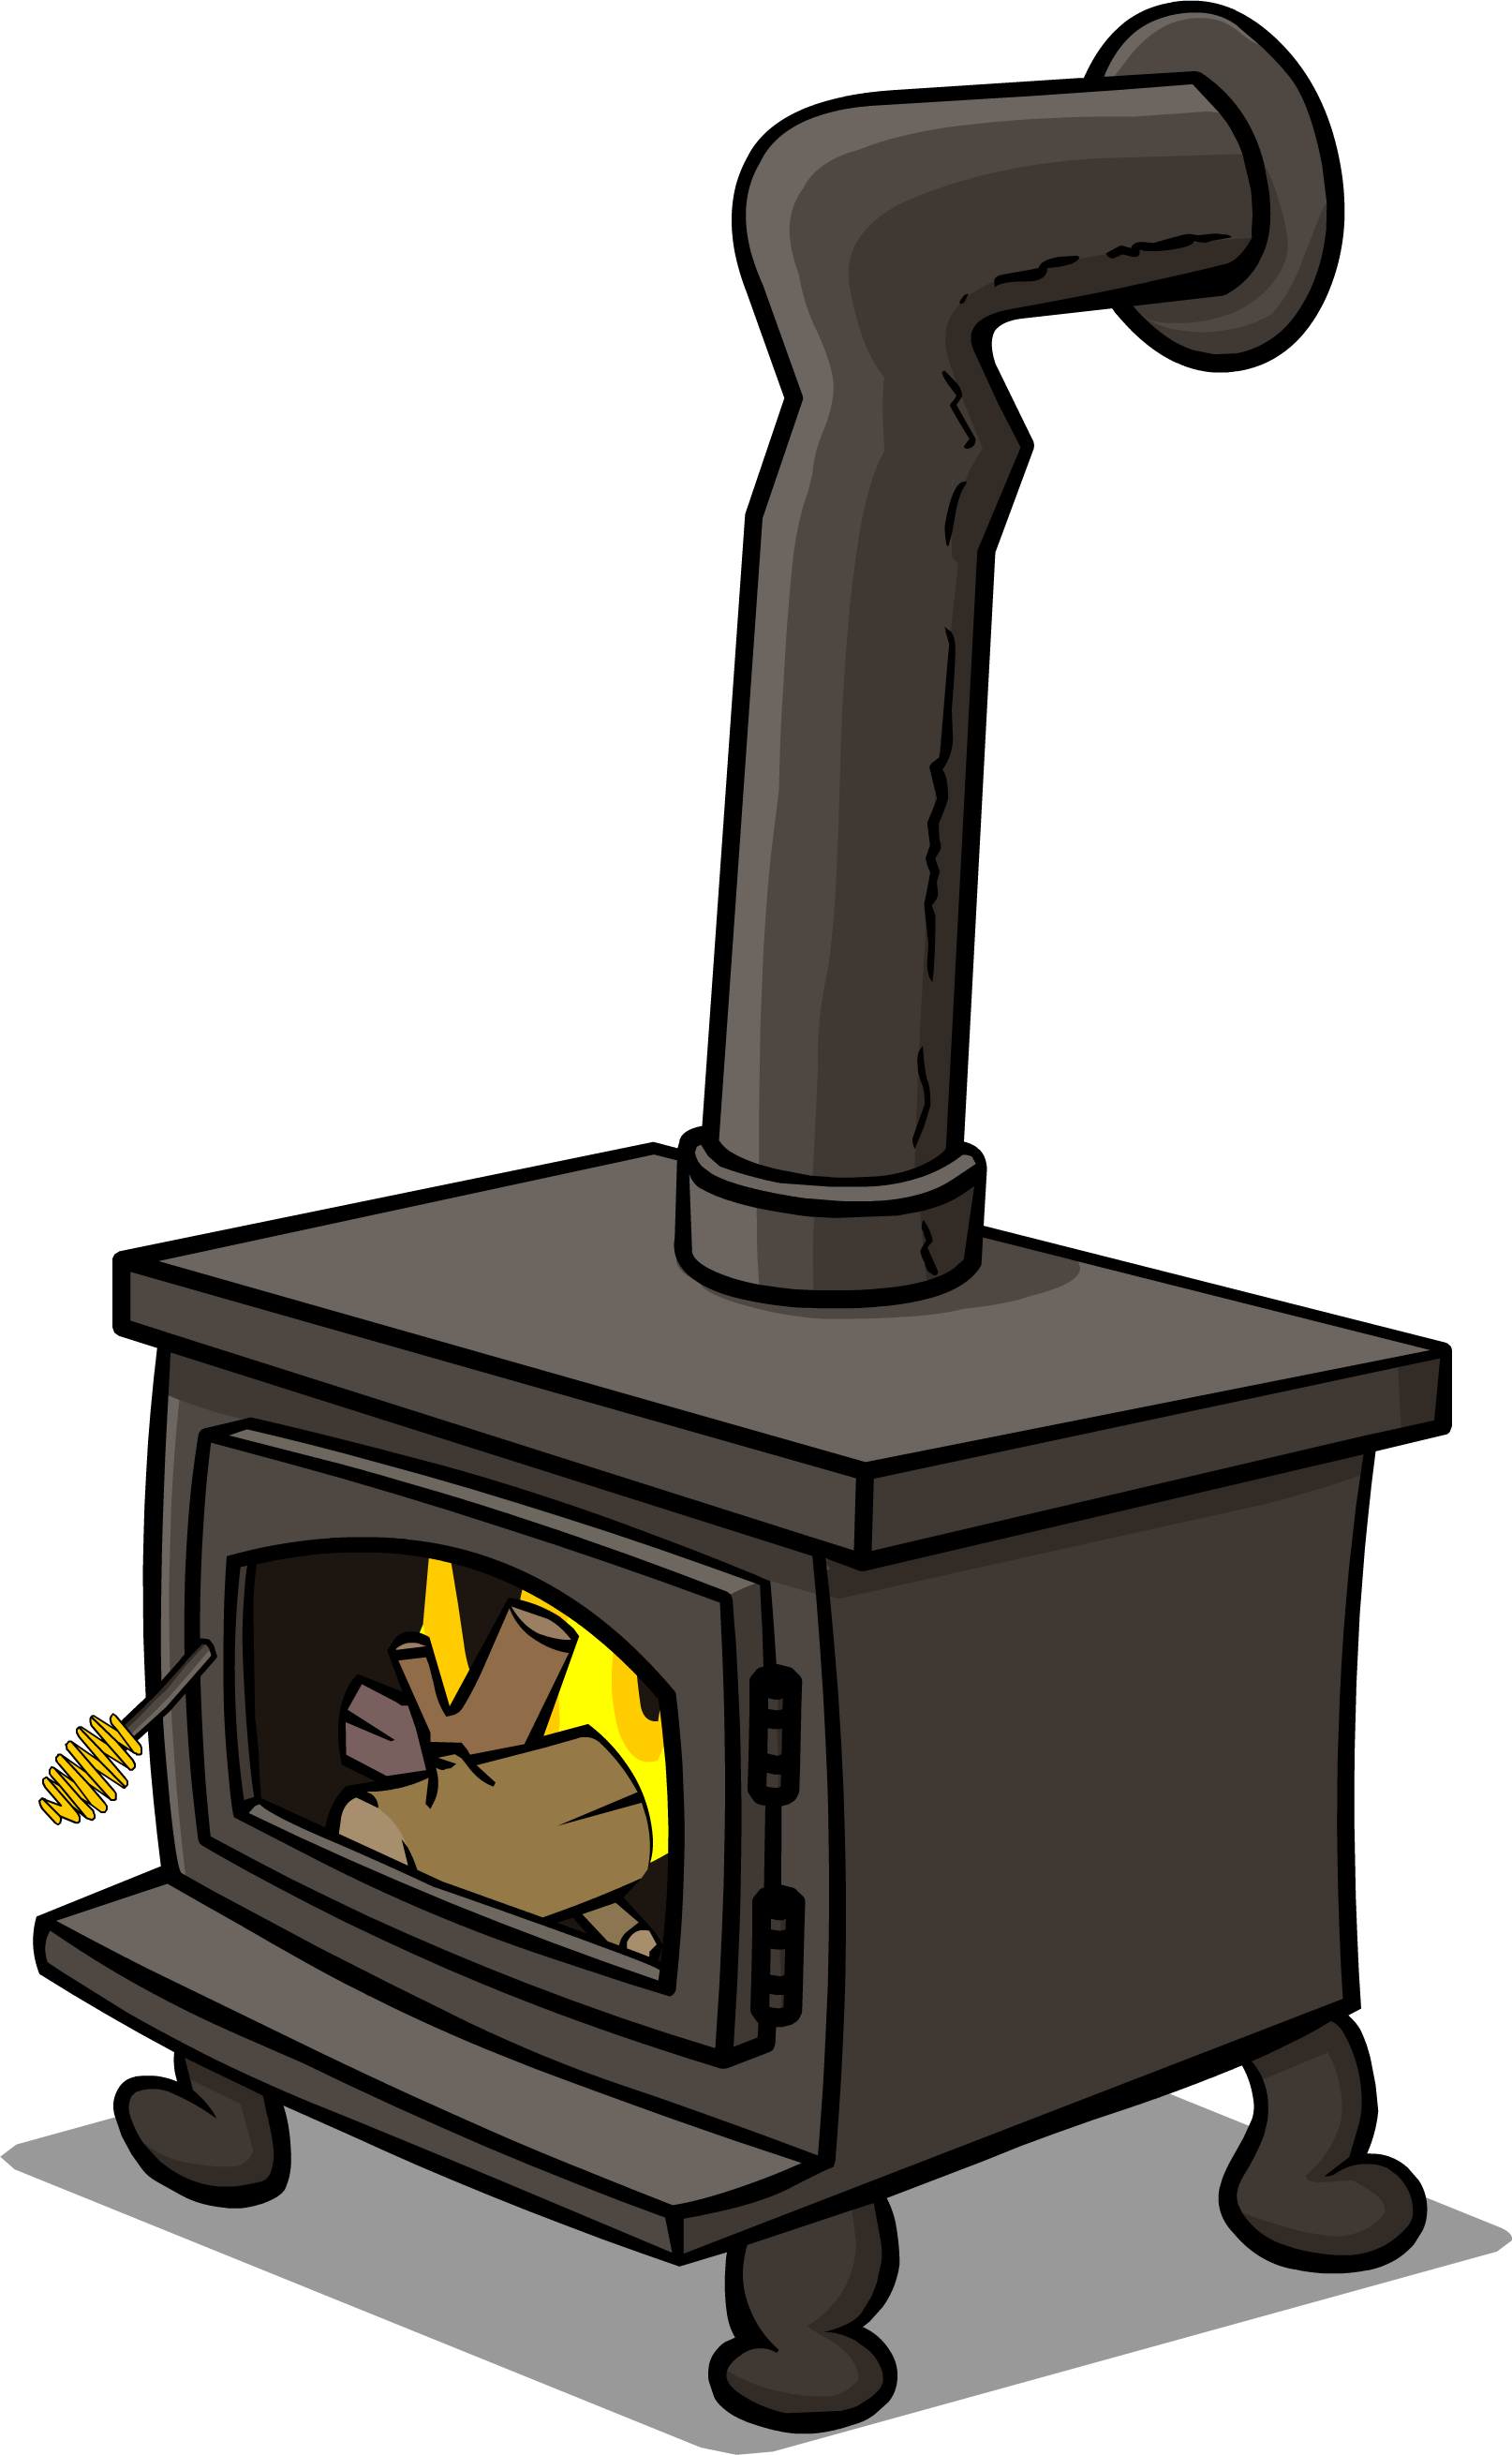 Image stove sprite png. Win clipart wood